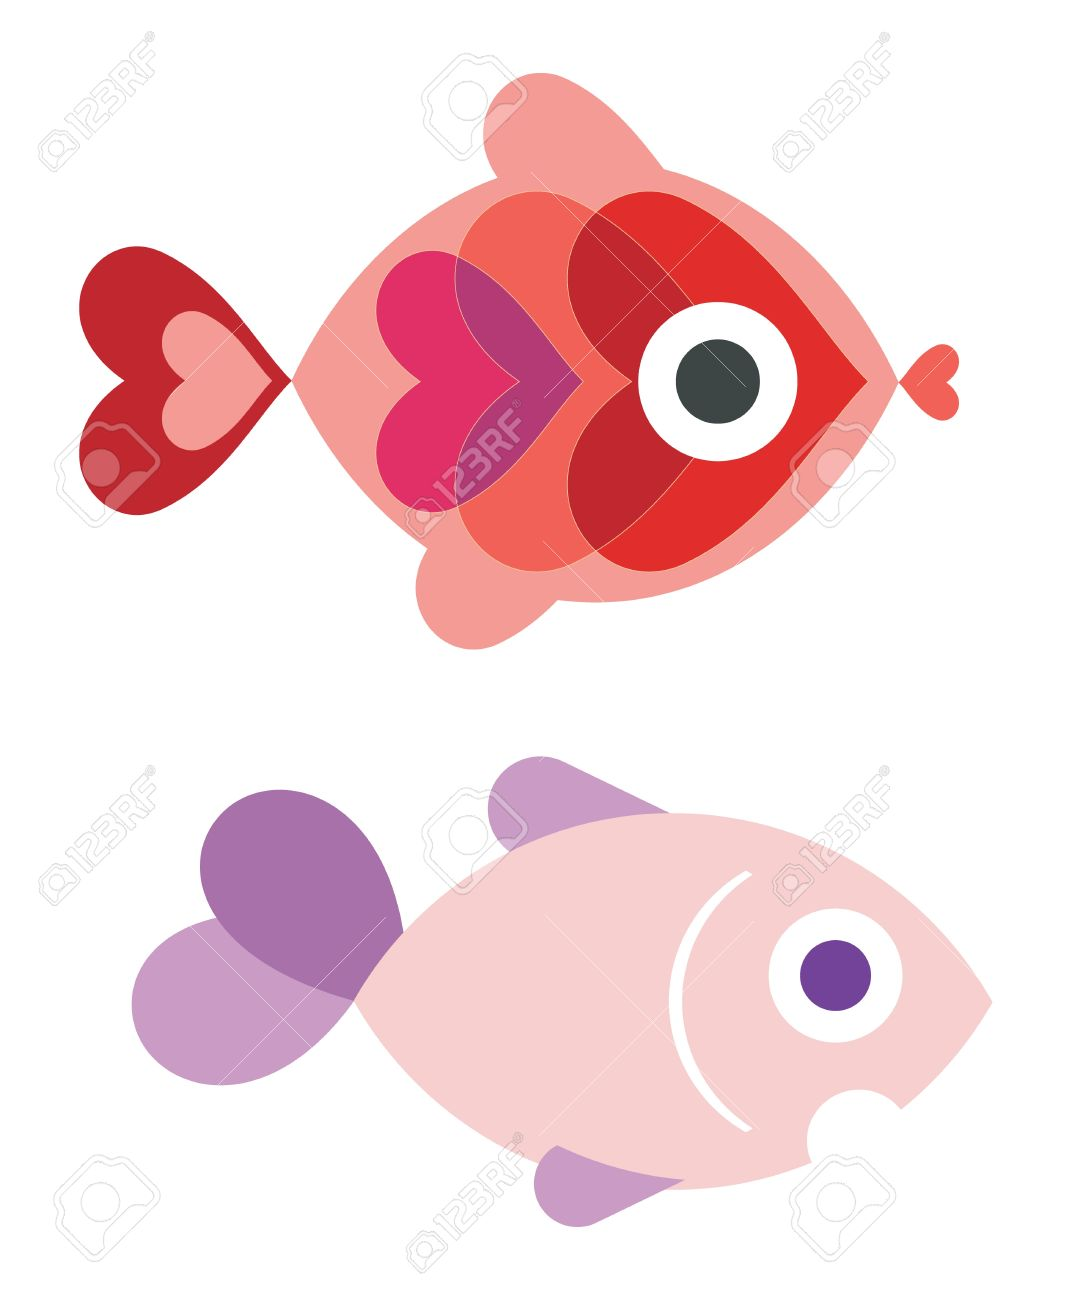 Ornamental Fish Royalty Free Cliparts, Vectors, And Stock.